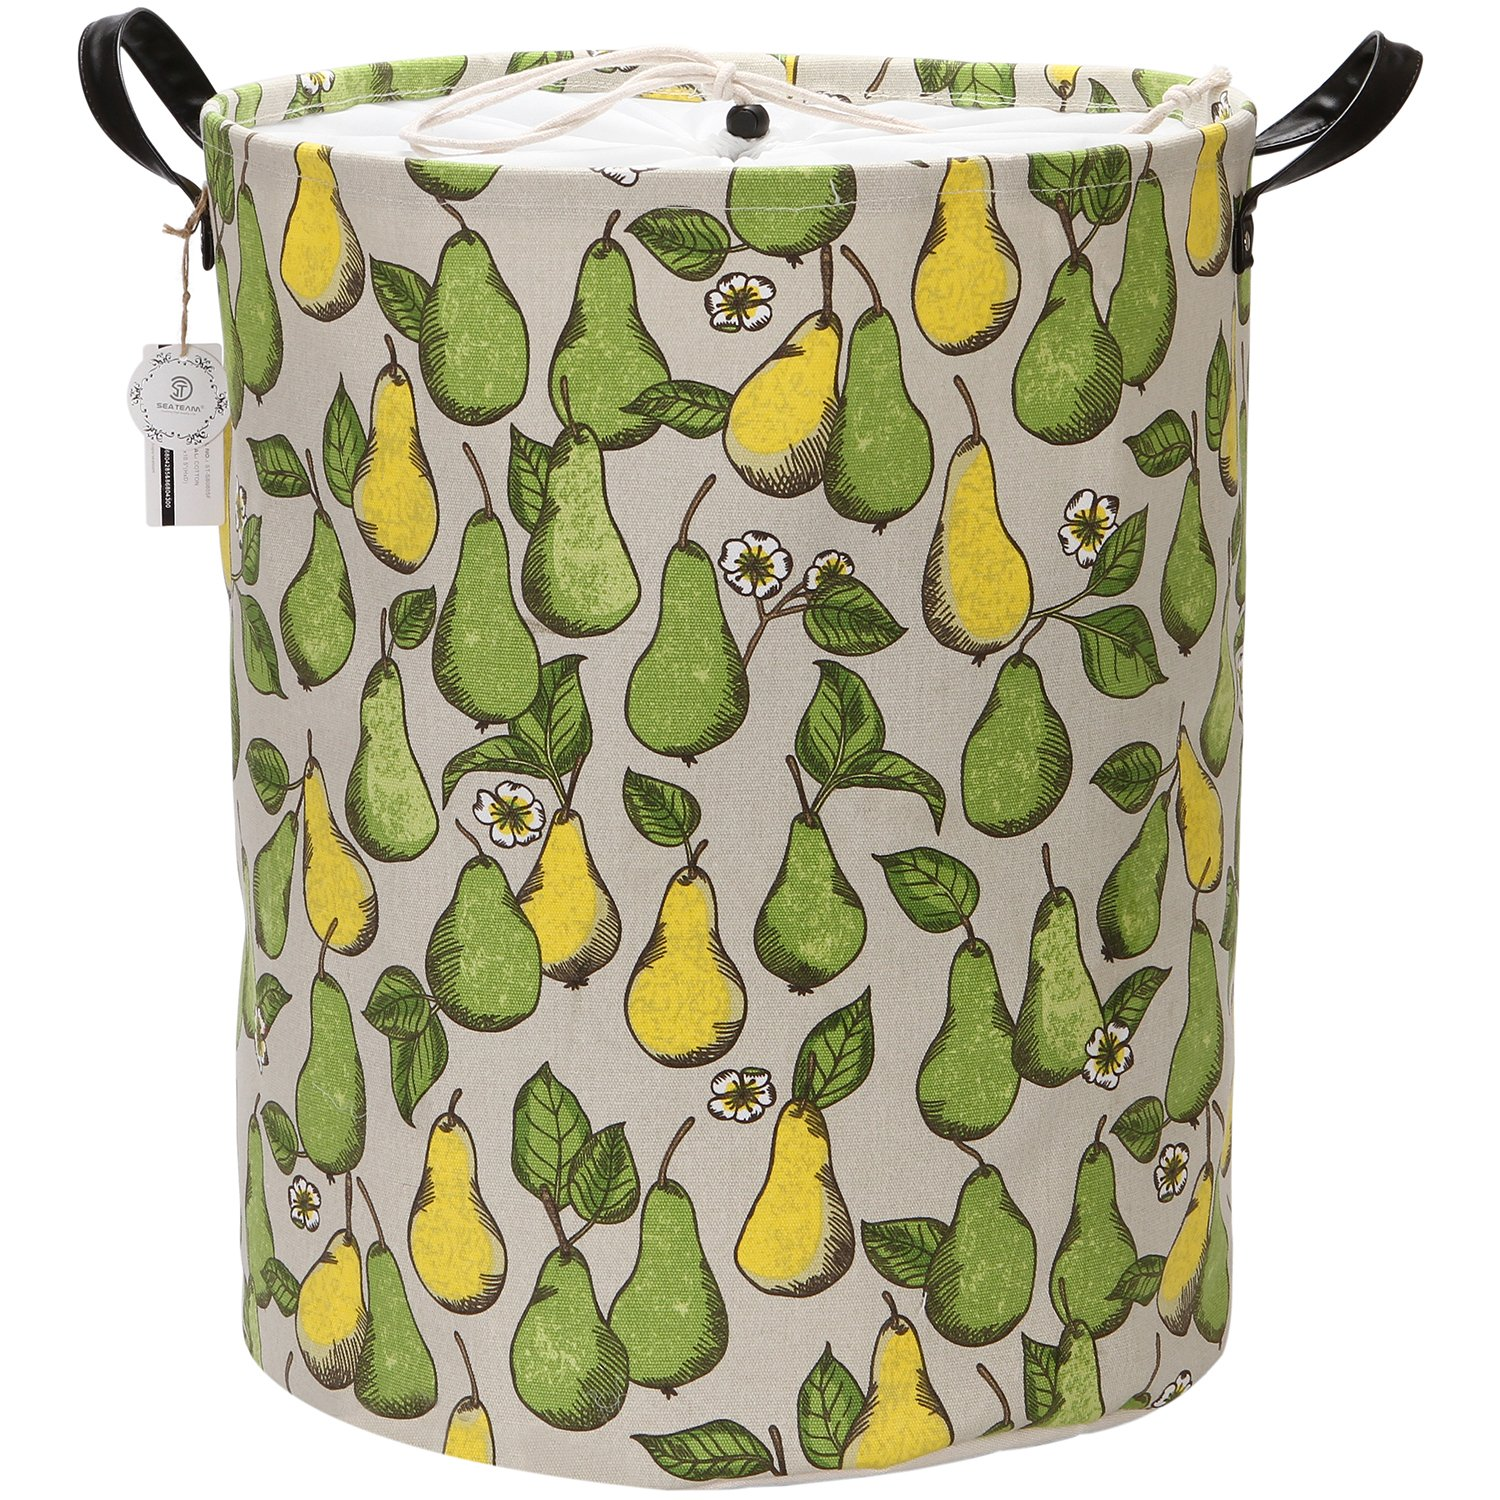 Sea Team 19.7'' Large Size Stylish Pear Design Canvas & Linen Fabric Laundry Hamper Storage Basket with Premium PU Leather Handles for Kid's Room, Drawstring Cover with Waterproof Coating